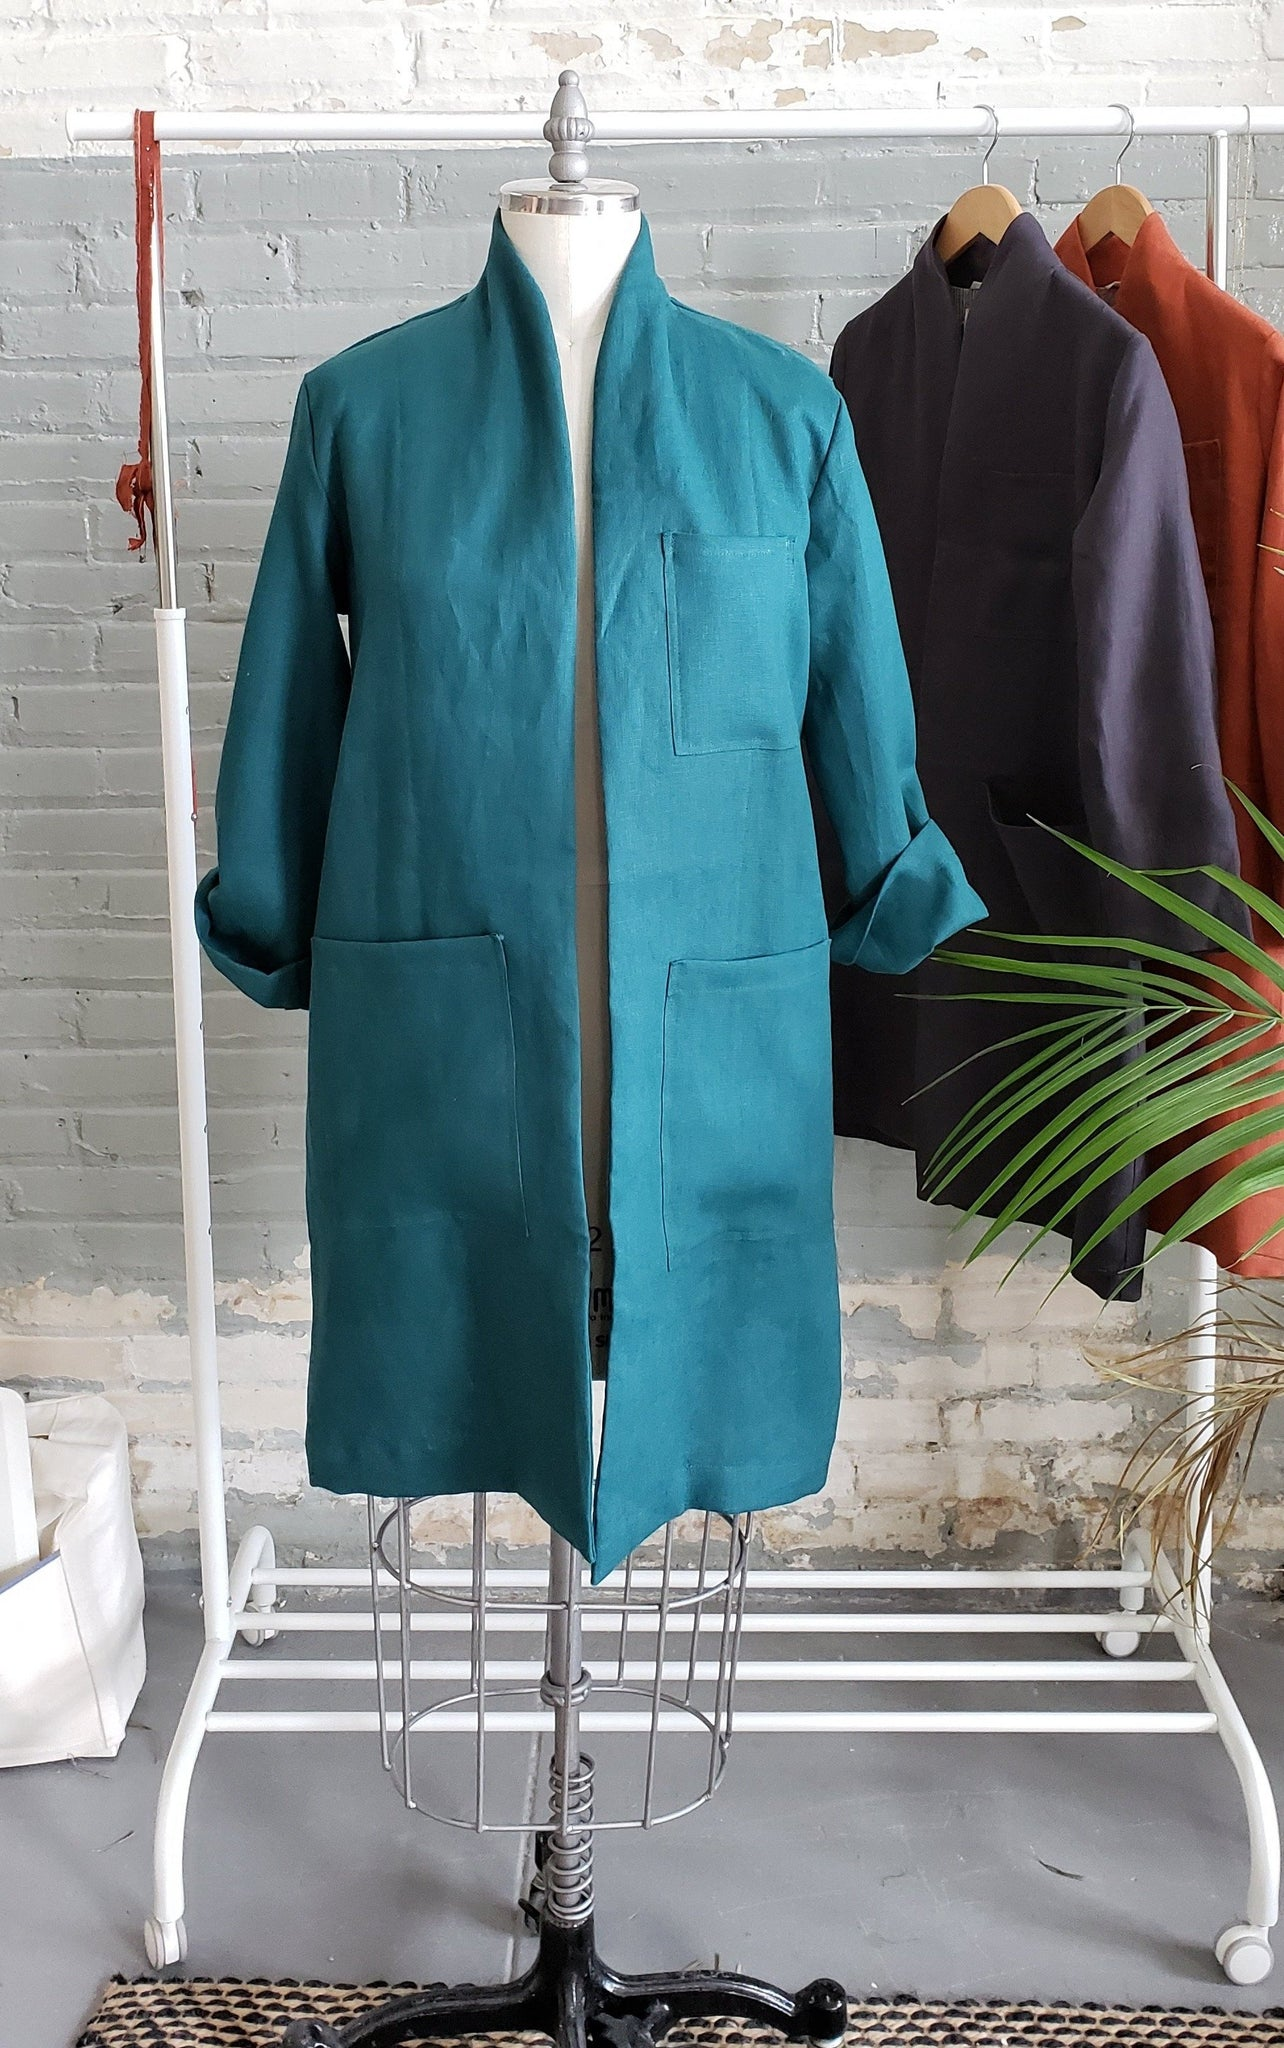 womens teal linen lab coats hanging on display